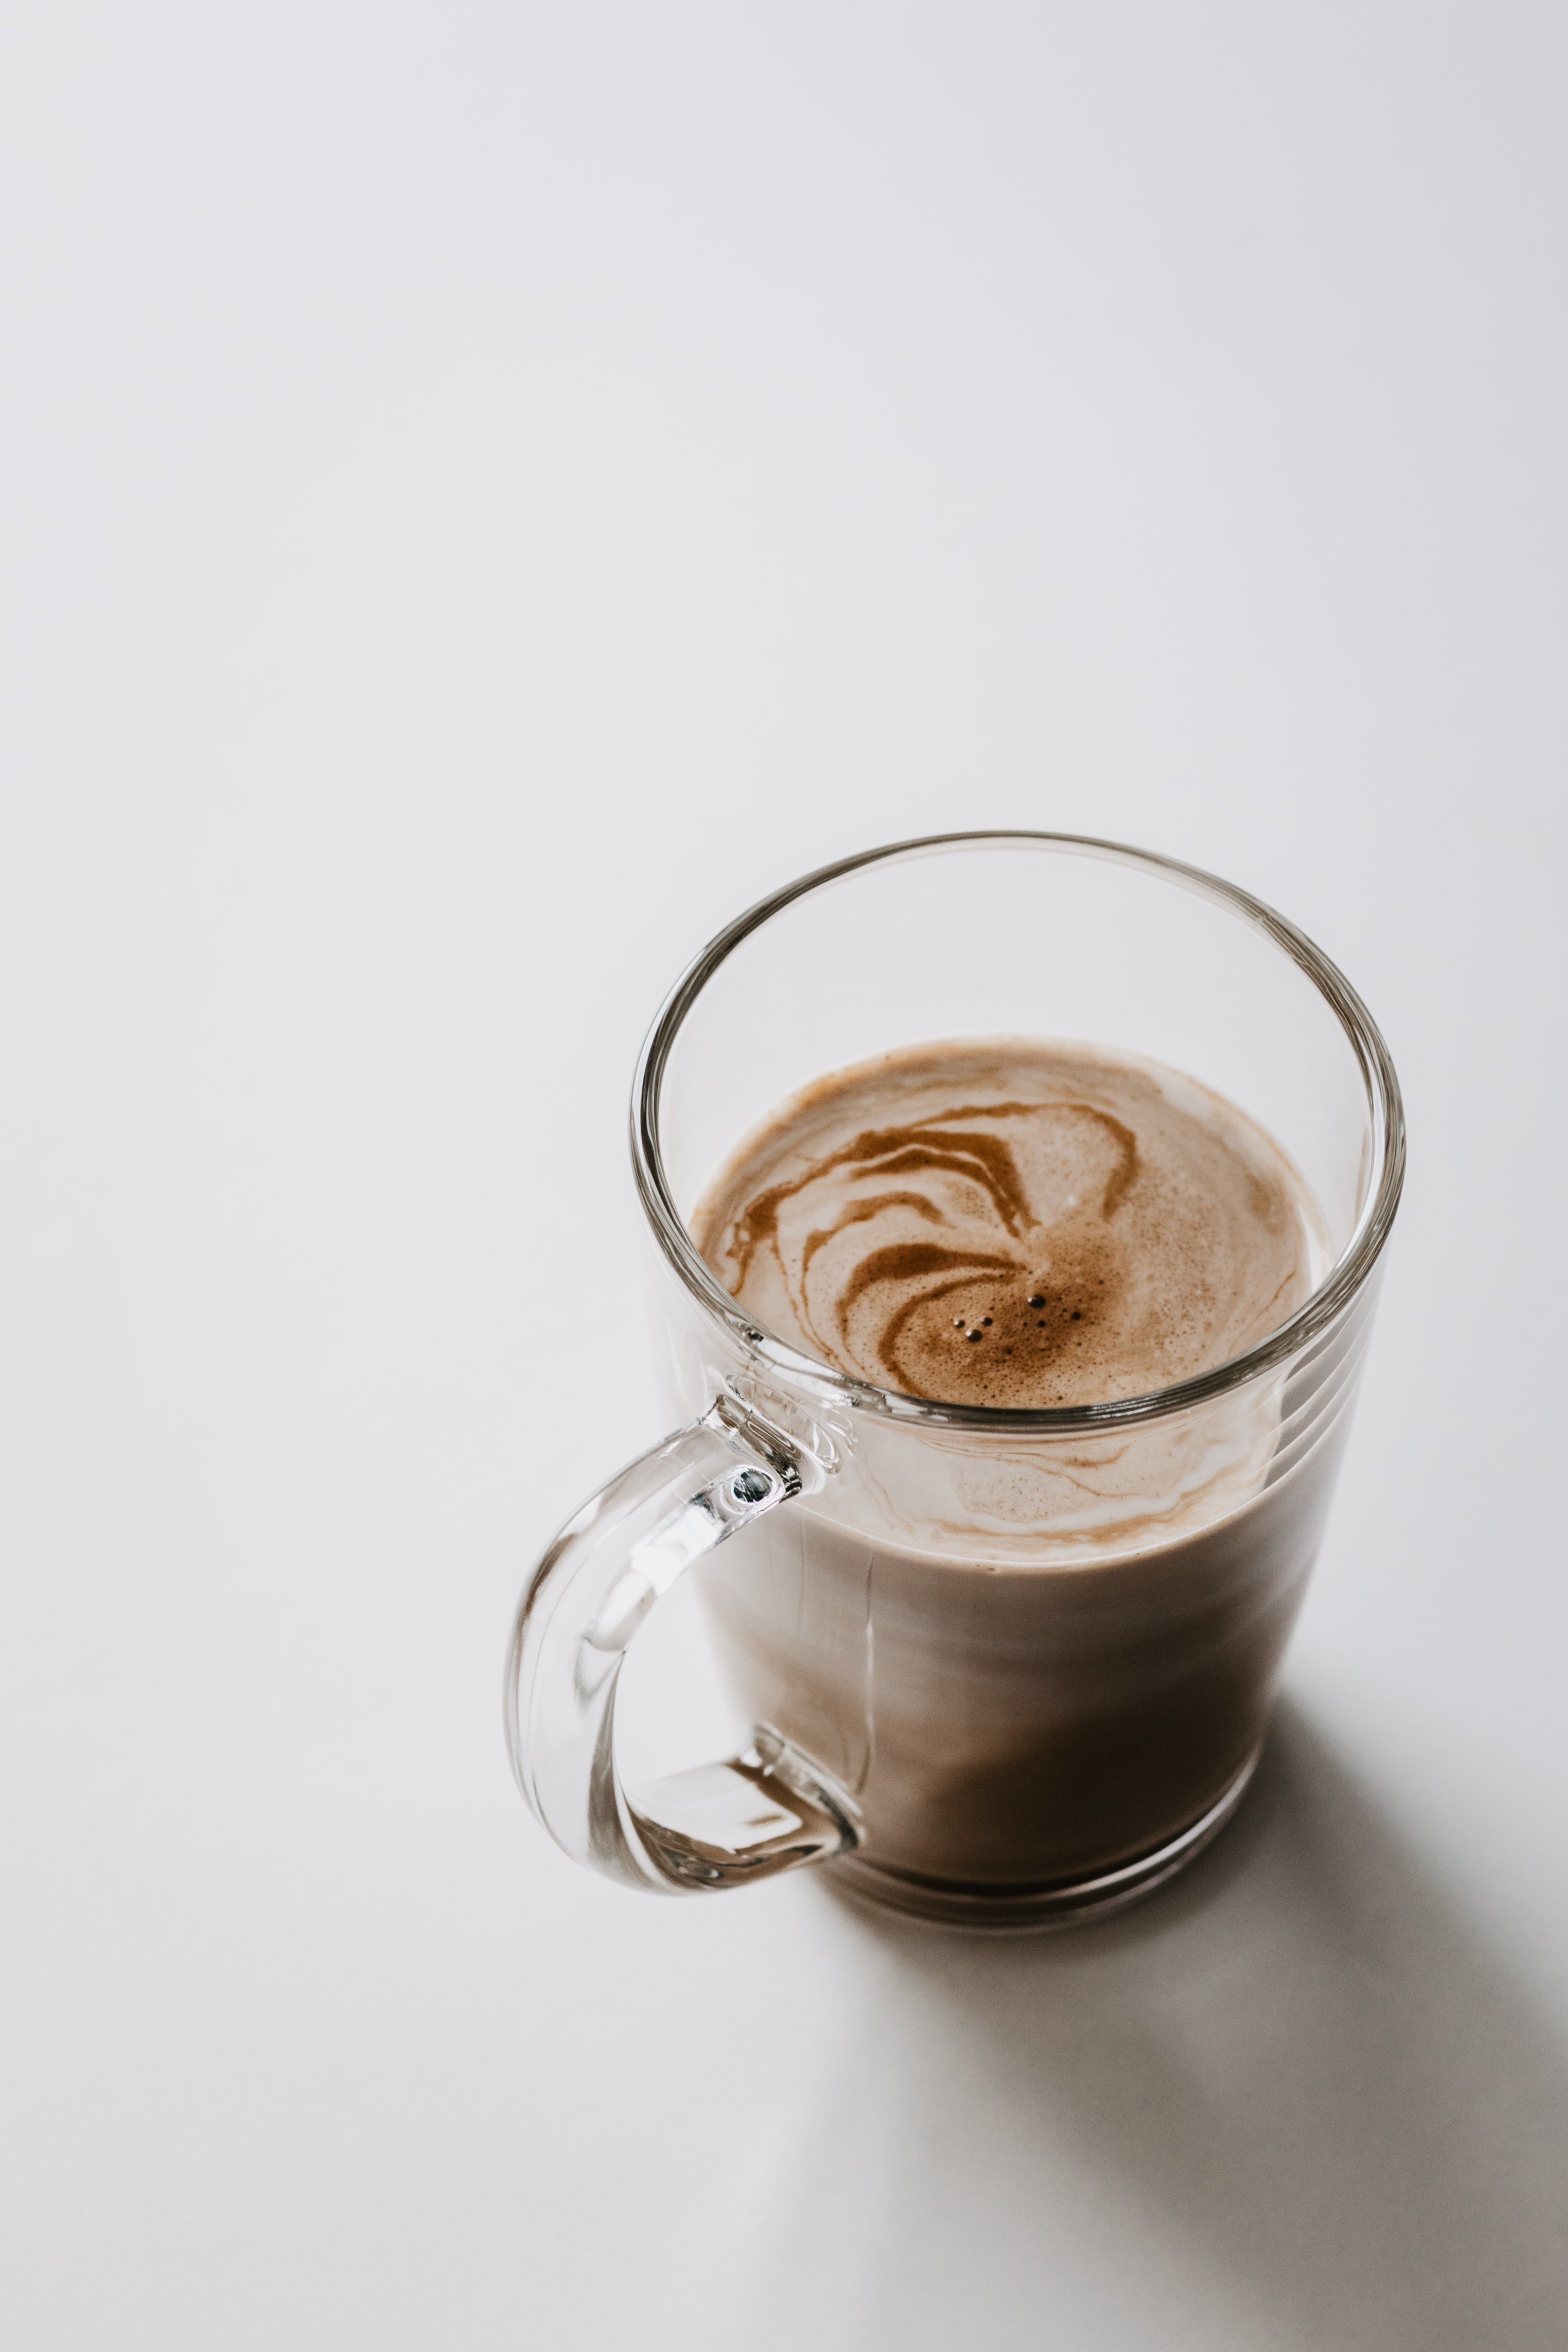 chocolate mocha serve in glass mug